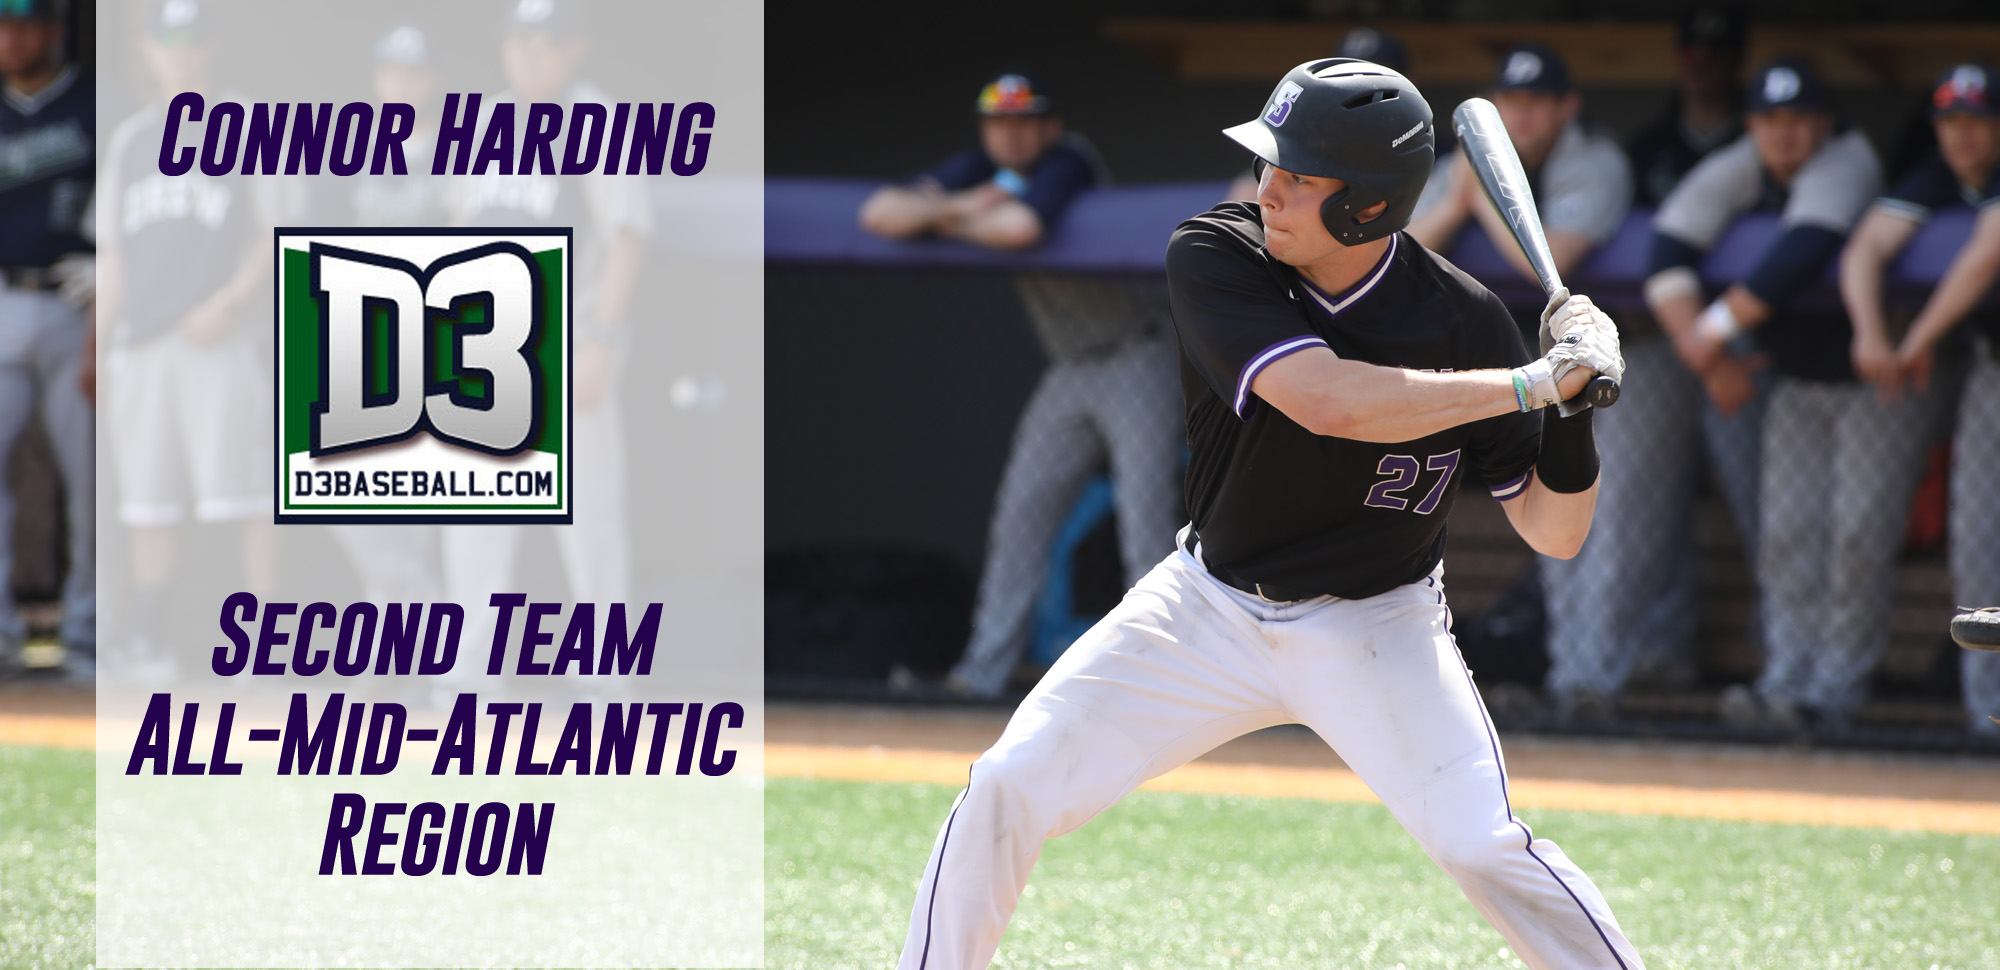 Sophomore Connor Harding has been named to the D3baseball.com All-Mid-Atlantic Region Second Team. © Photo by Timothy R. Dougherty / doubleeaglephotography.com